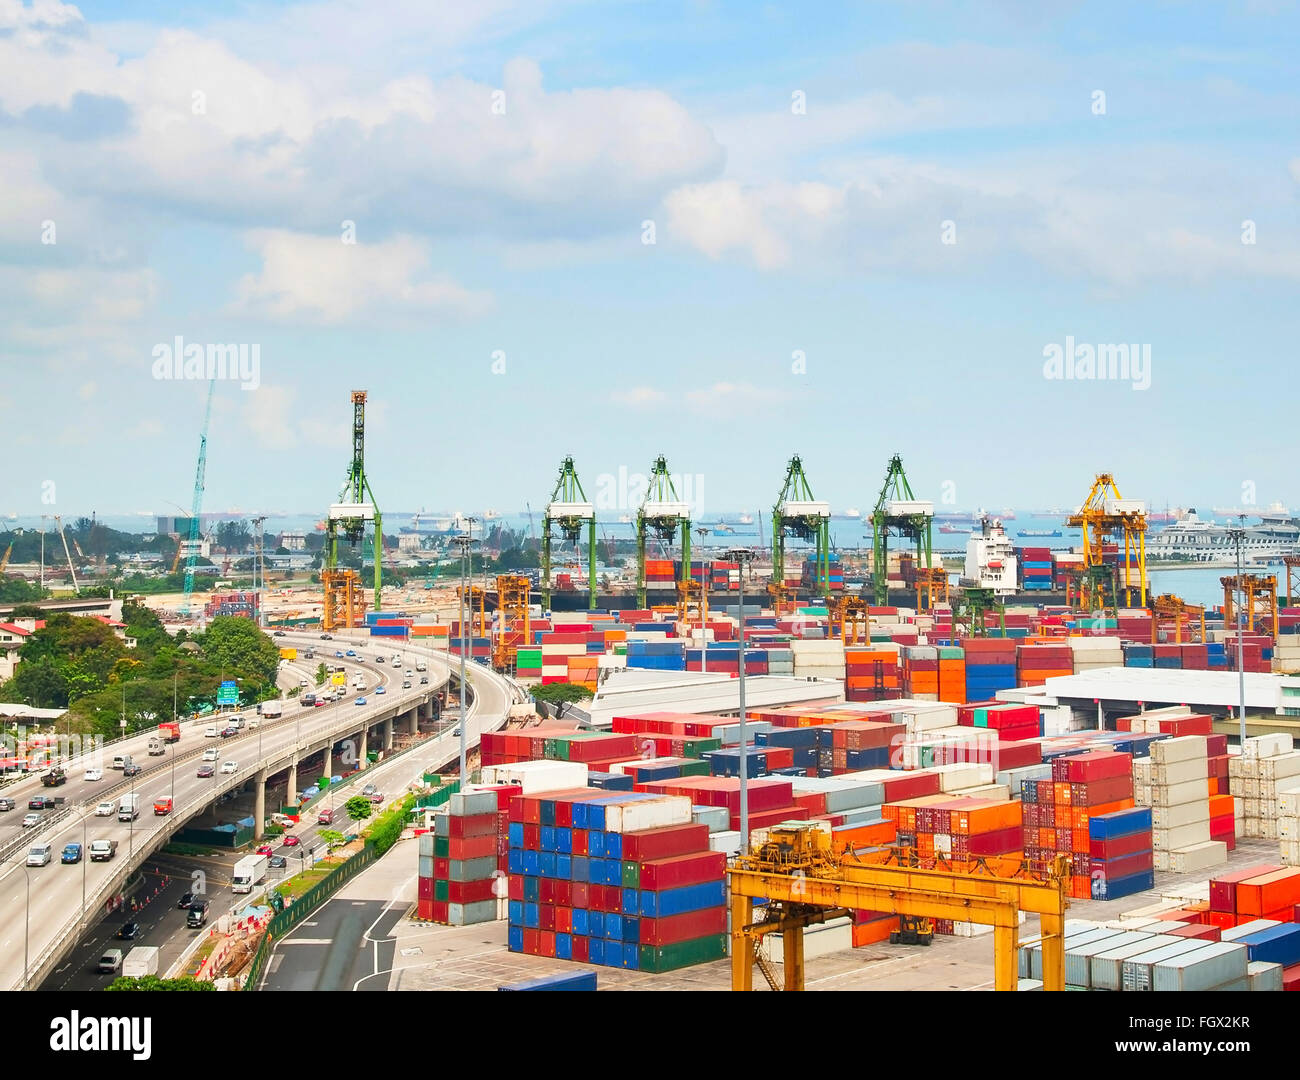 View of Singapore shipping port with many containers Stock Photo